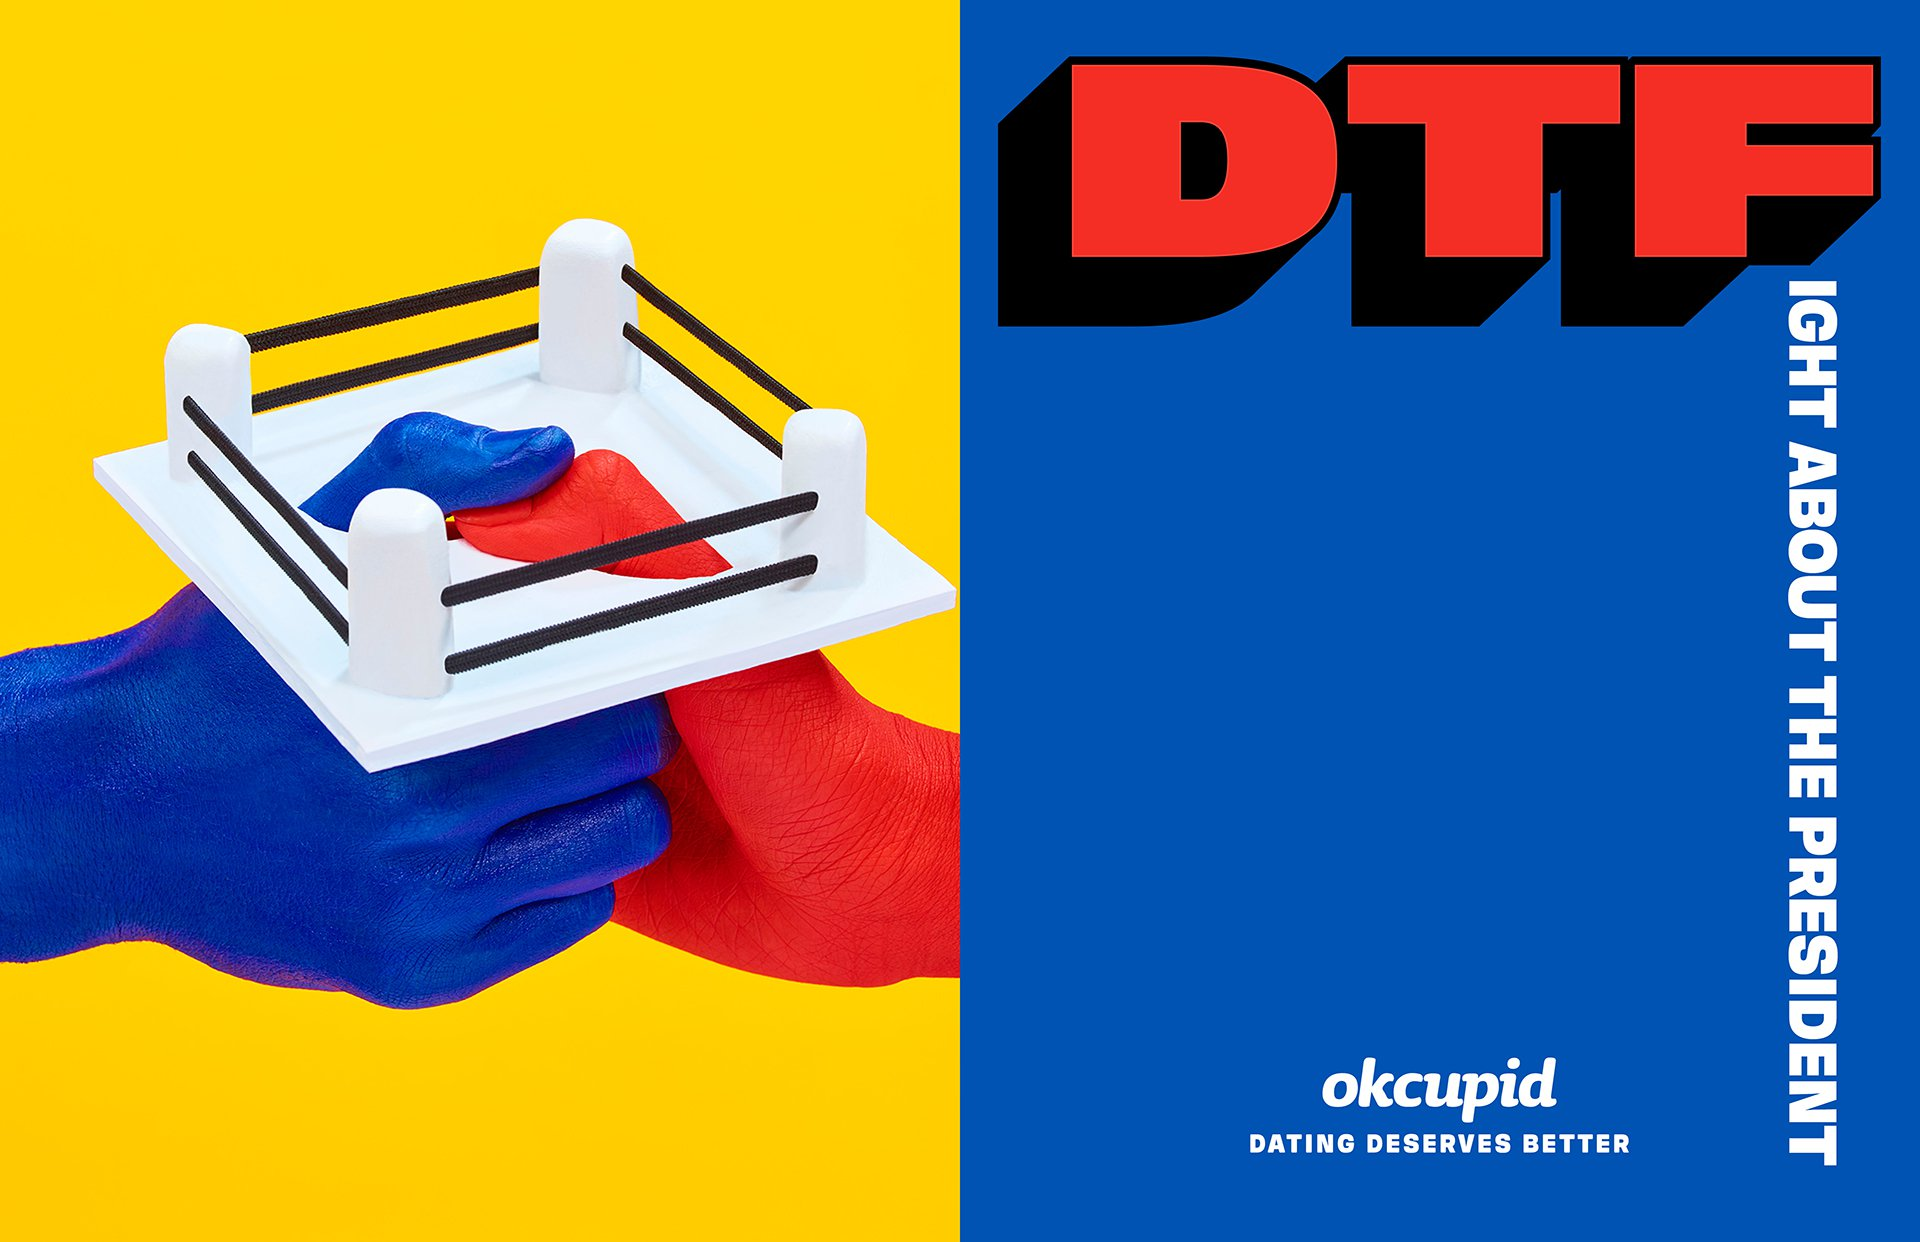 These new ads for OkCupid make dating apps look cool